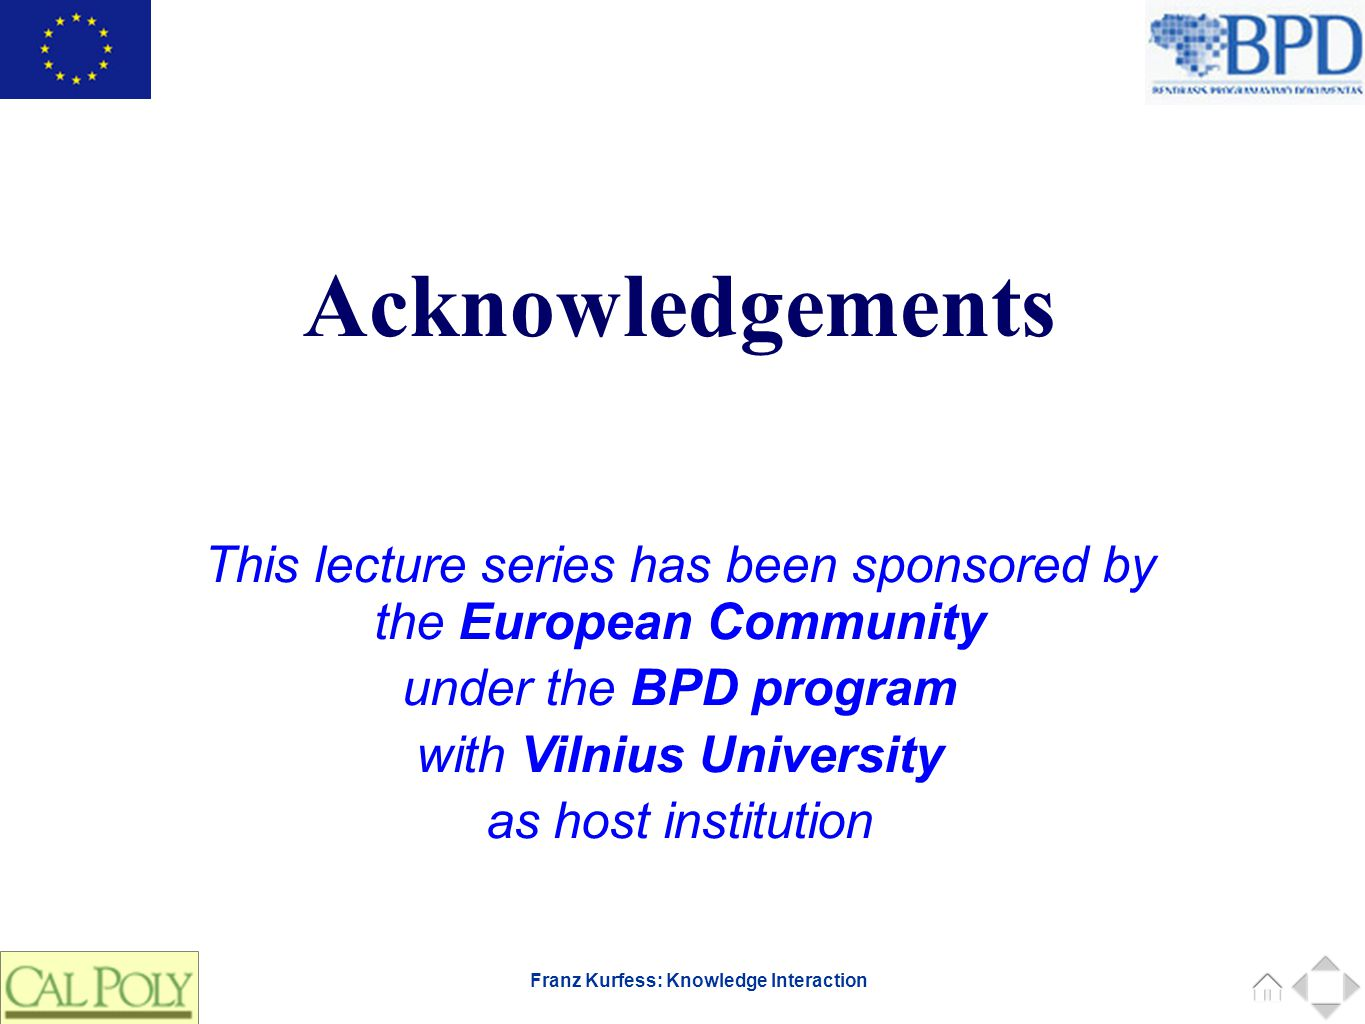 Franz Kurfess: Knowledge Interaction This lecture series has been sponsored by the European Community under the BPD program with Vilnius University as